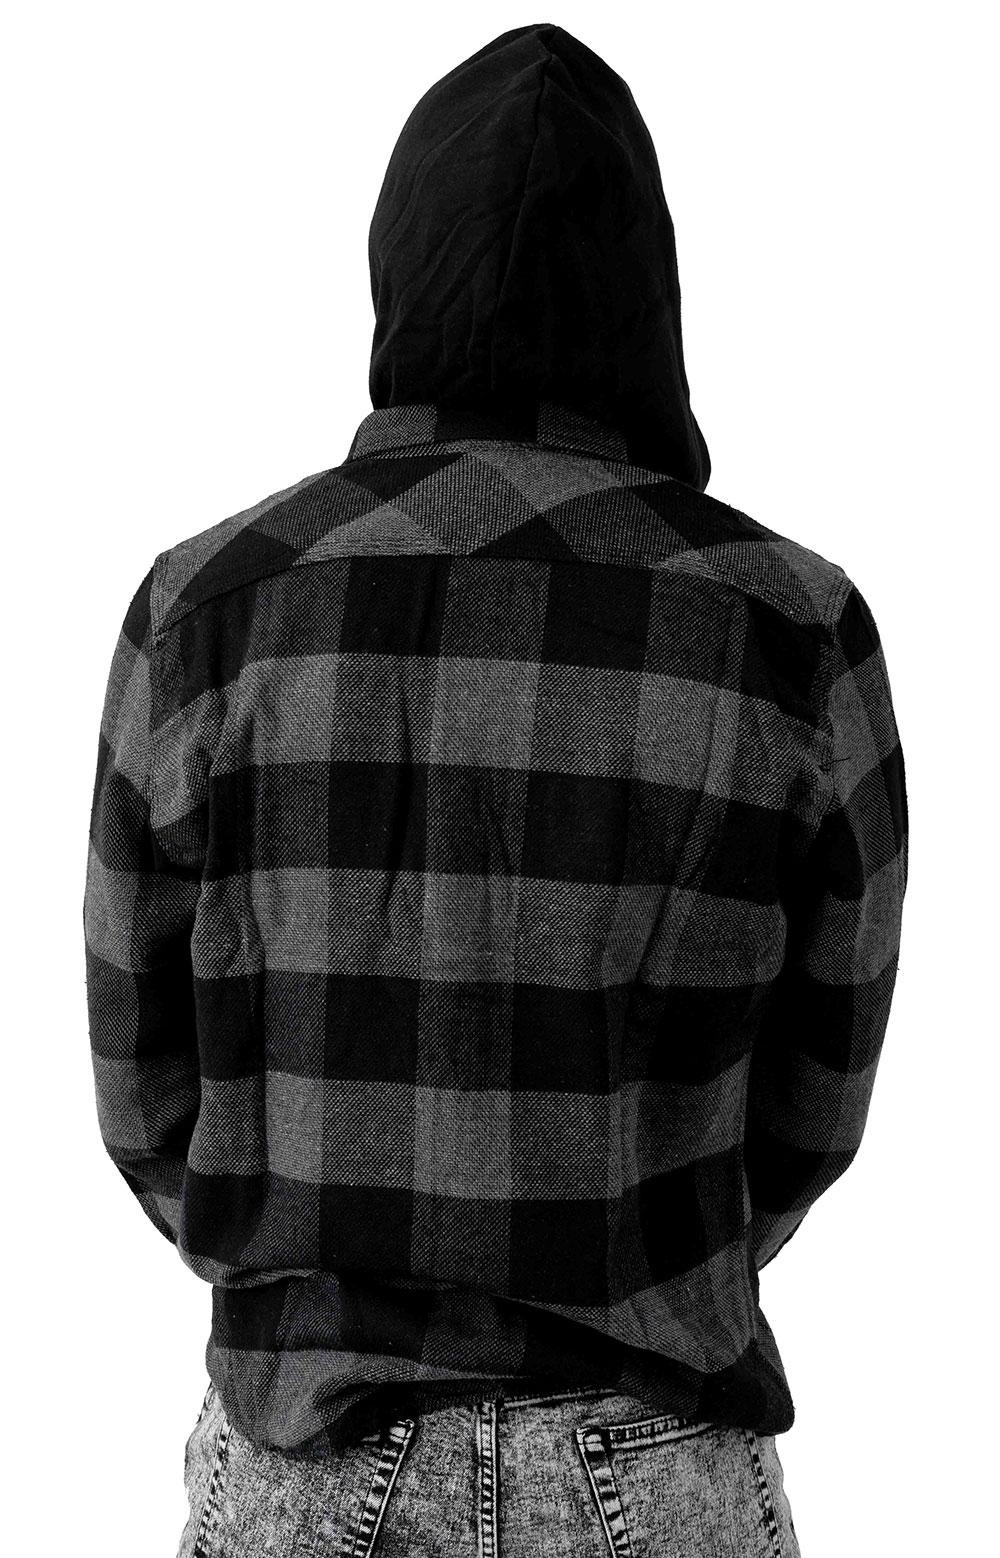 Bowery Hood L/S Flannel Button-Up Shirt - Black/Heather Grey 3